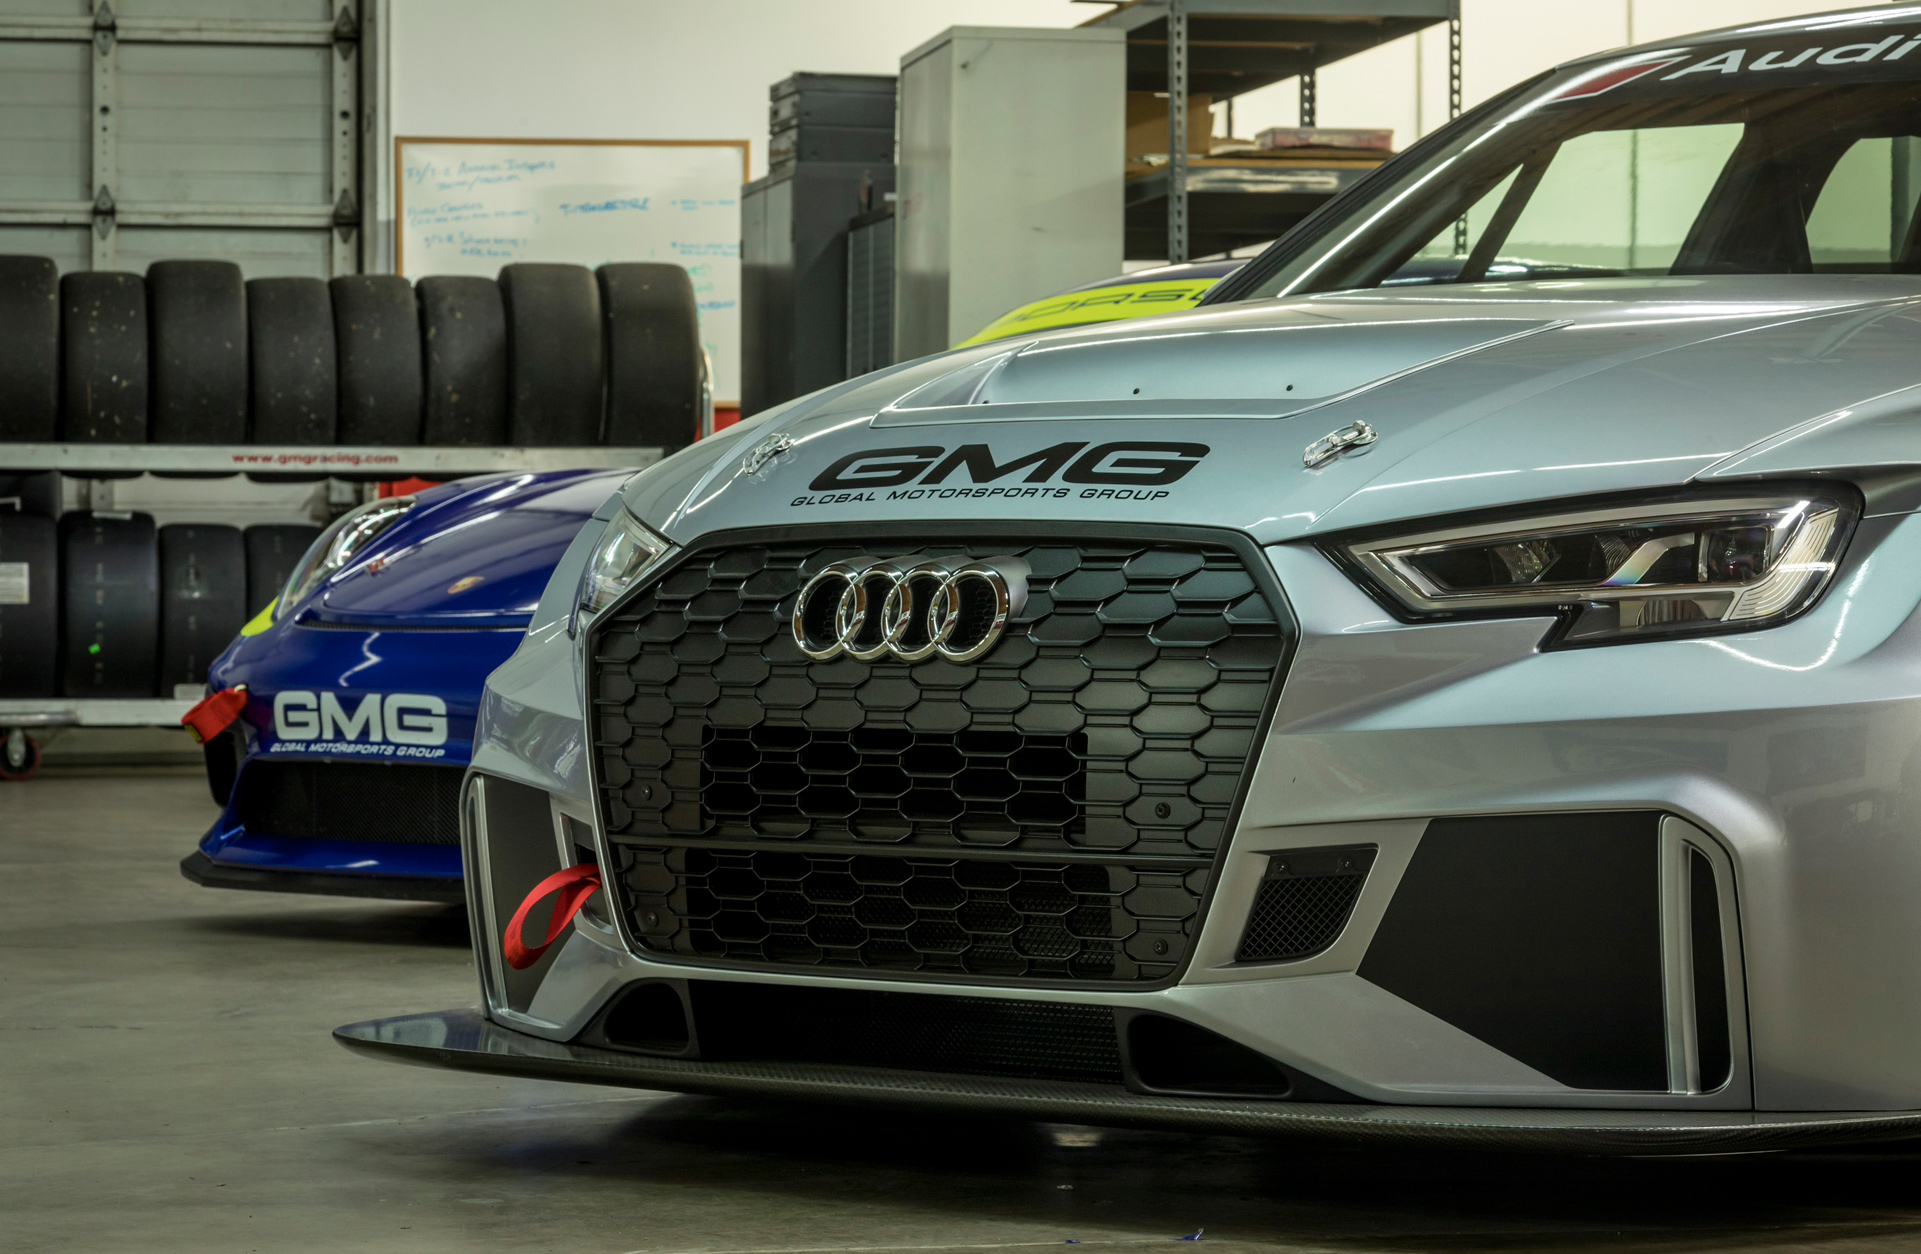 Audi Factory Service at GMG Racing